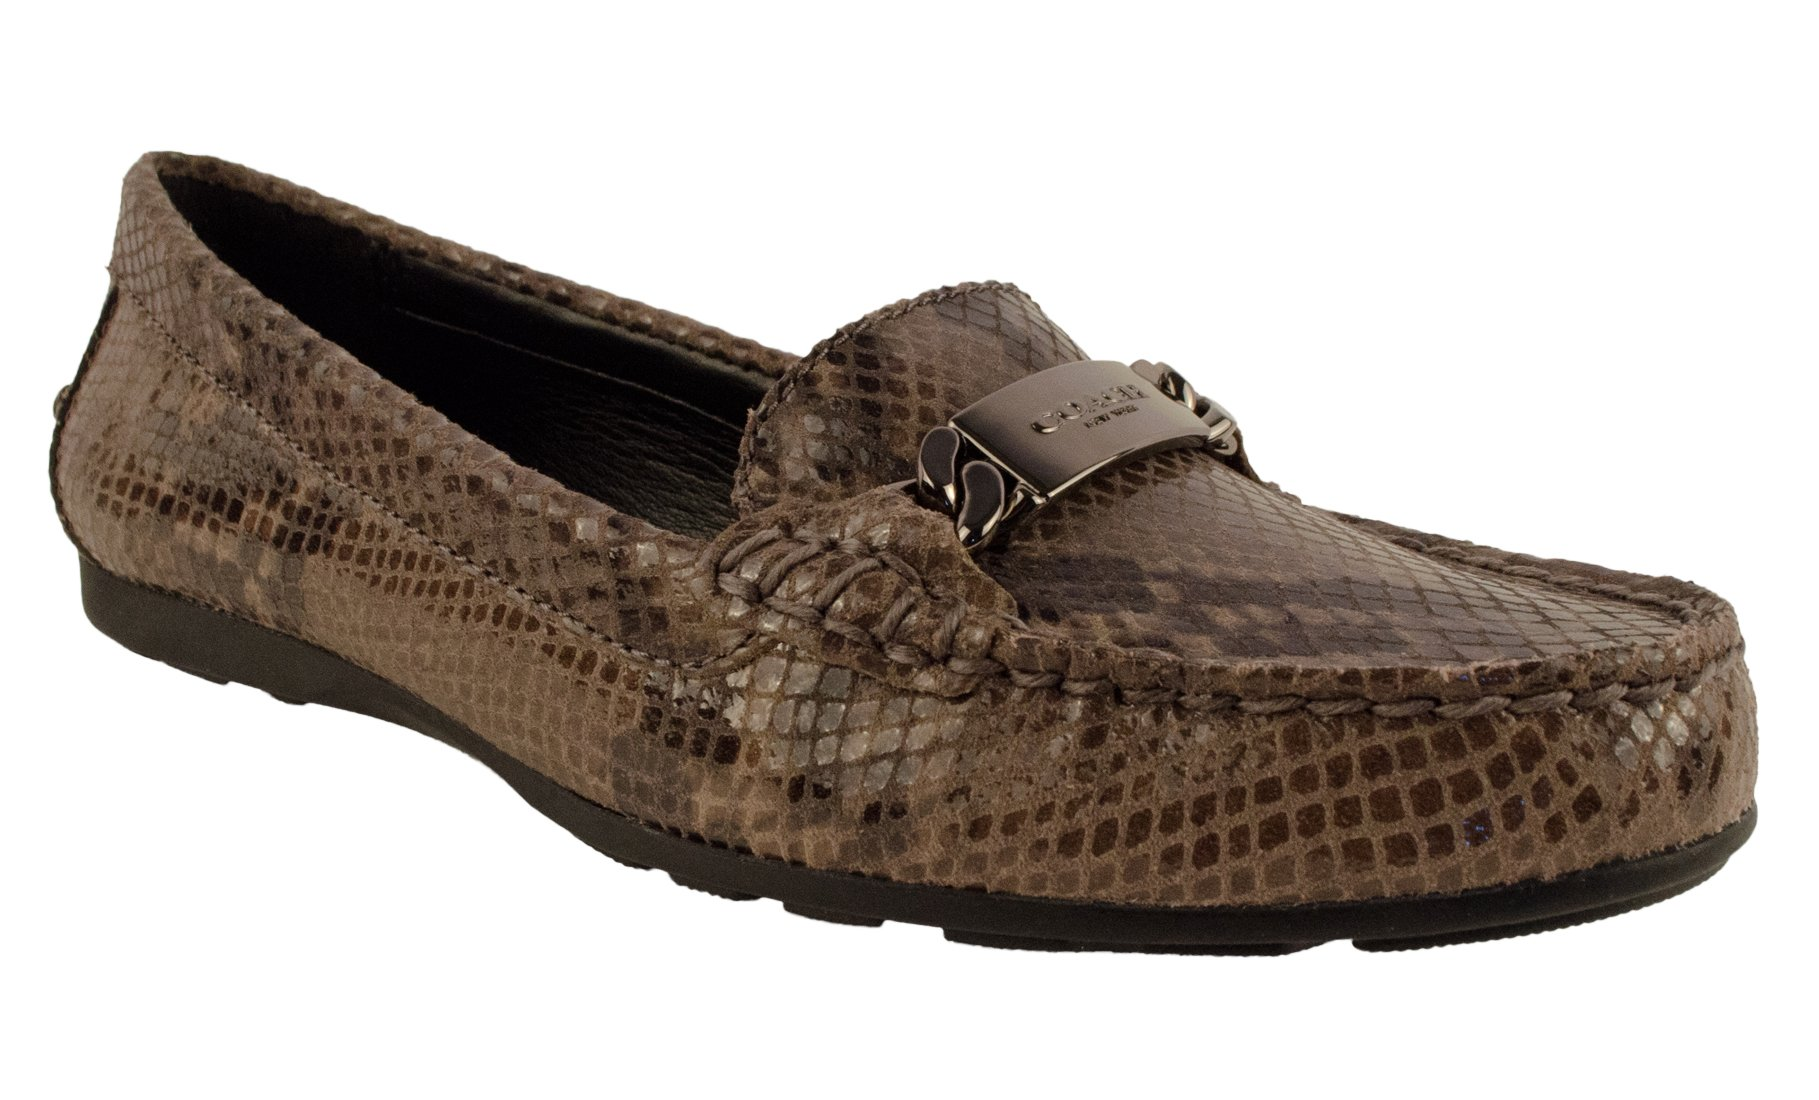 Coach Womens Olive Sand Printed Snake Closed Toe Loafers